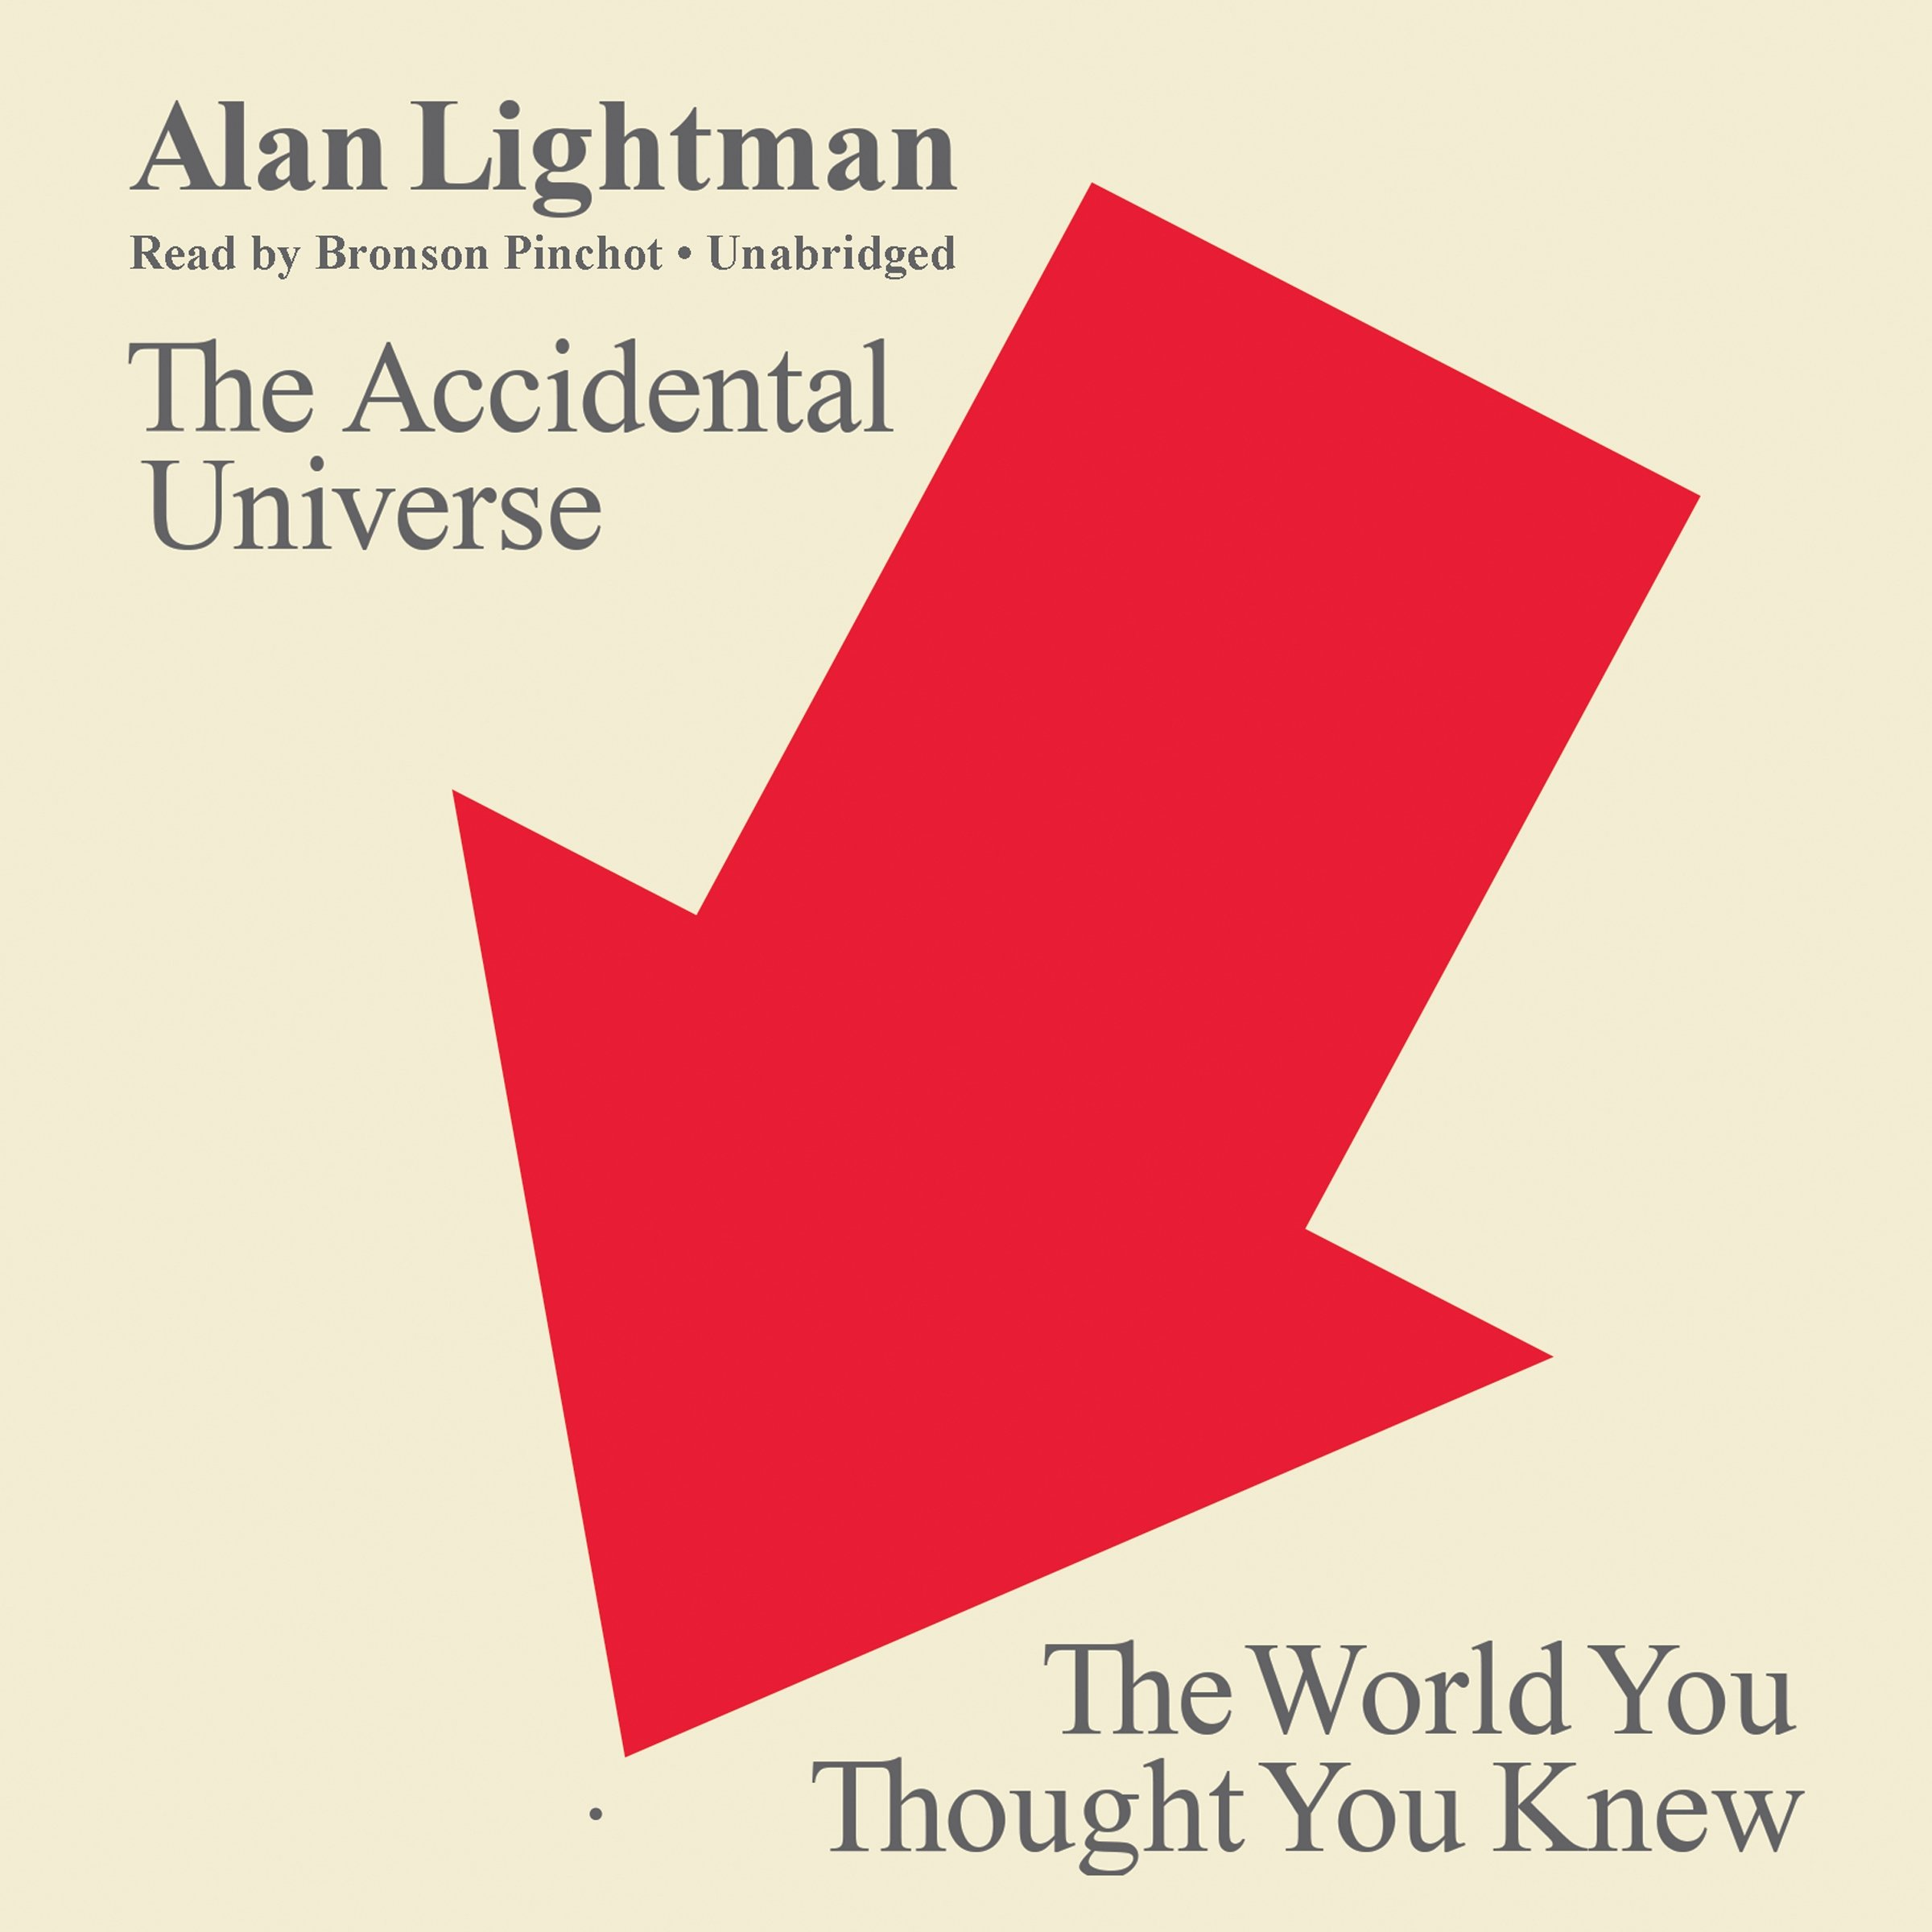 The Accidental Universe - The World You Thought You Knew - Alan Lightman